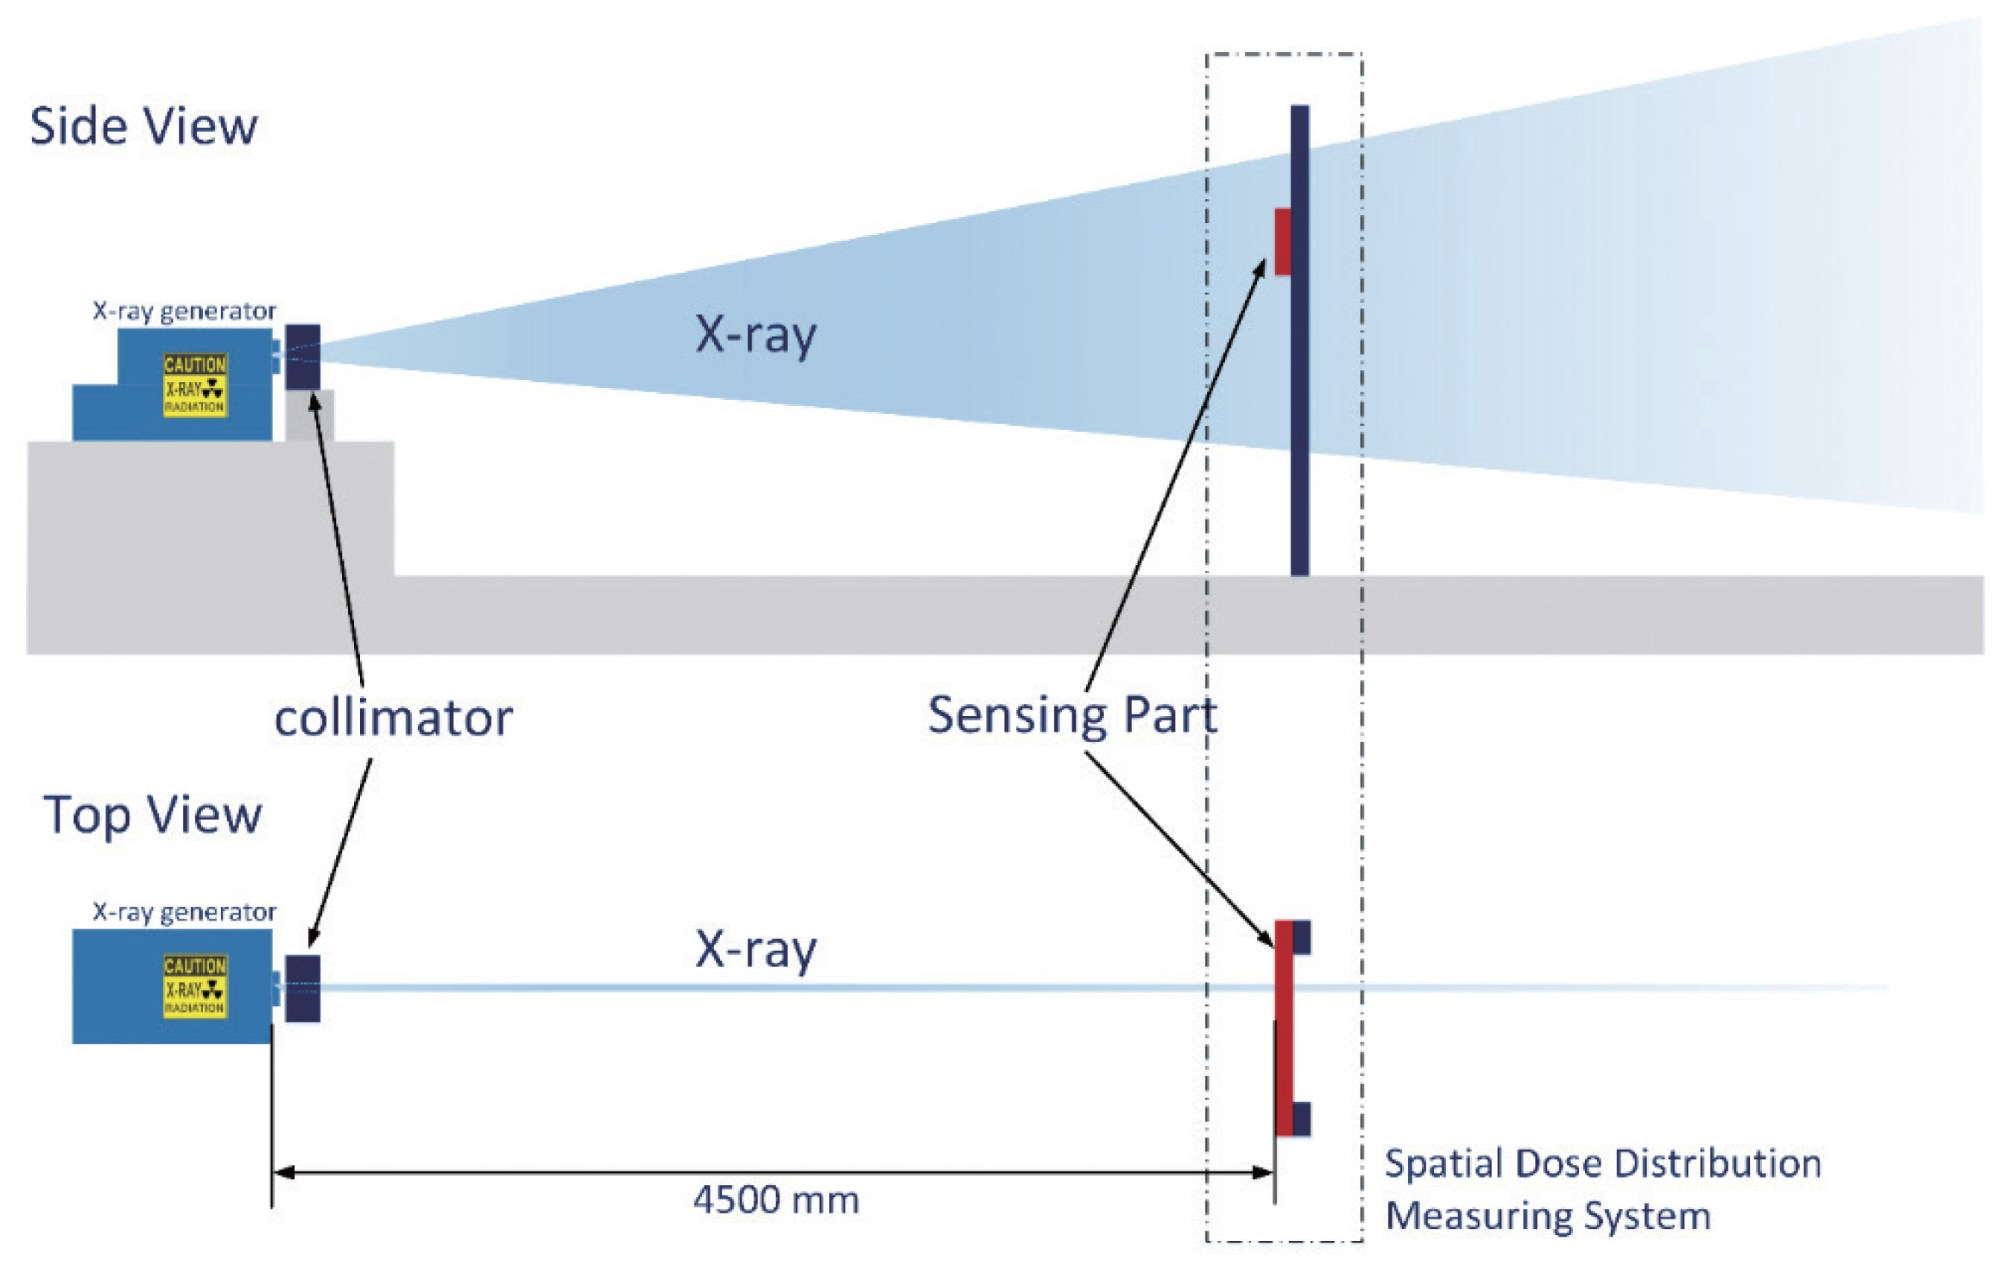 hight resolution of schematic diagram for performance evaluation experiment of x ray spatial distribution measuring device the distance between the x ray generating position